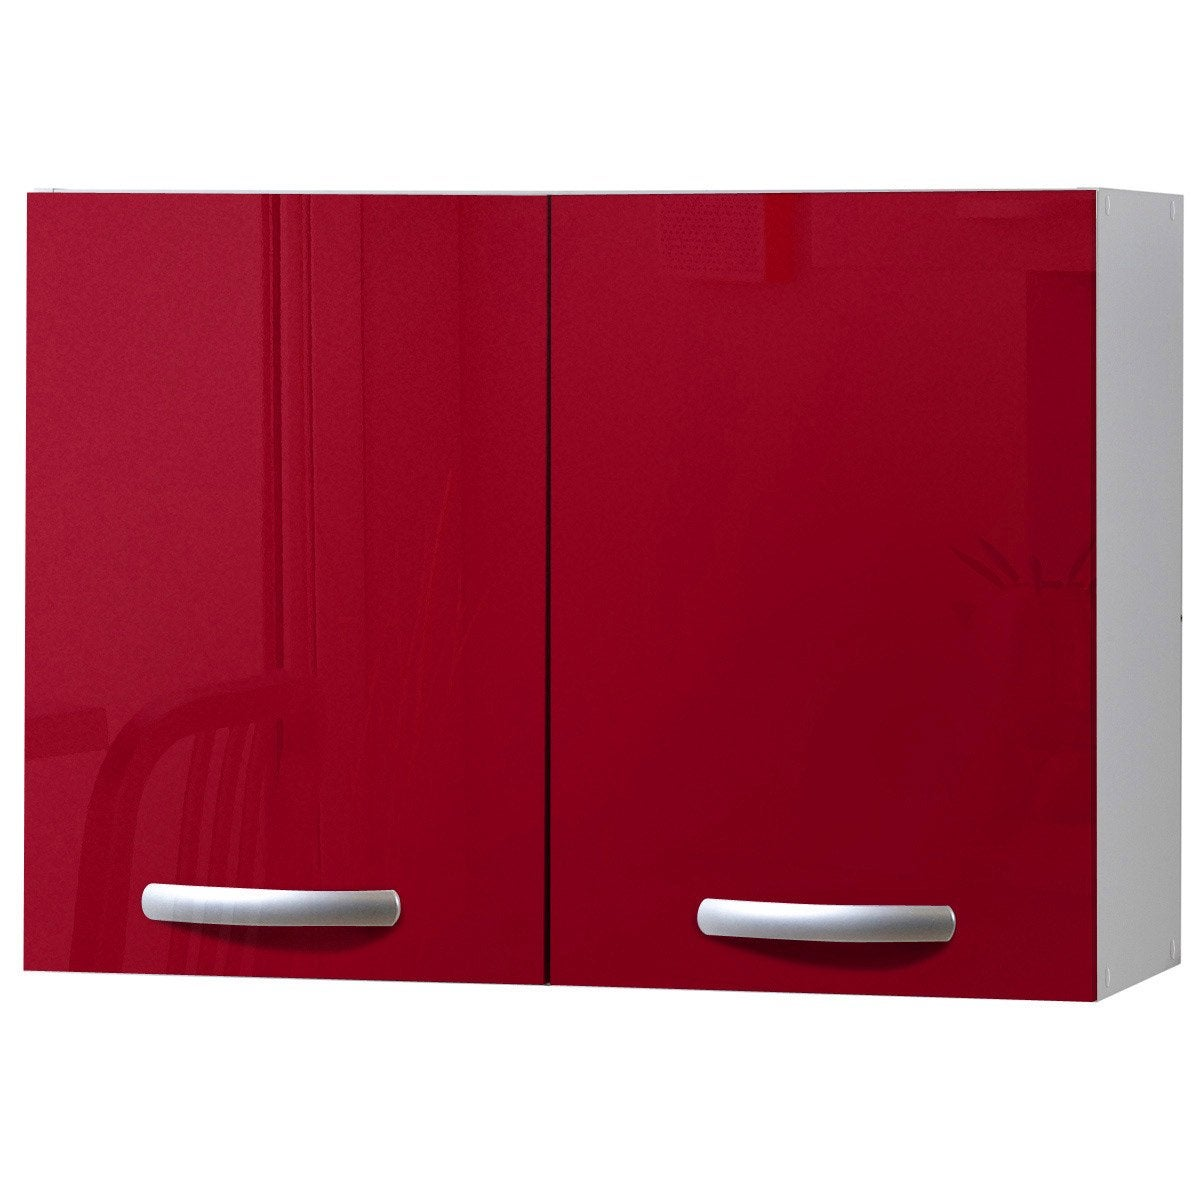 meuble de cuisine haut 2 portes rouge brillant h57x l80x p35cm leroy merlin. Black Bedroom Furniture Sets. Home Design Ideas